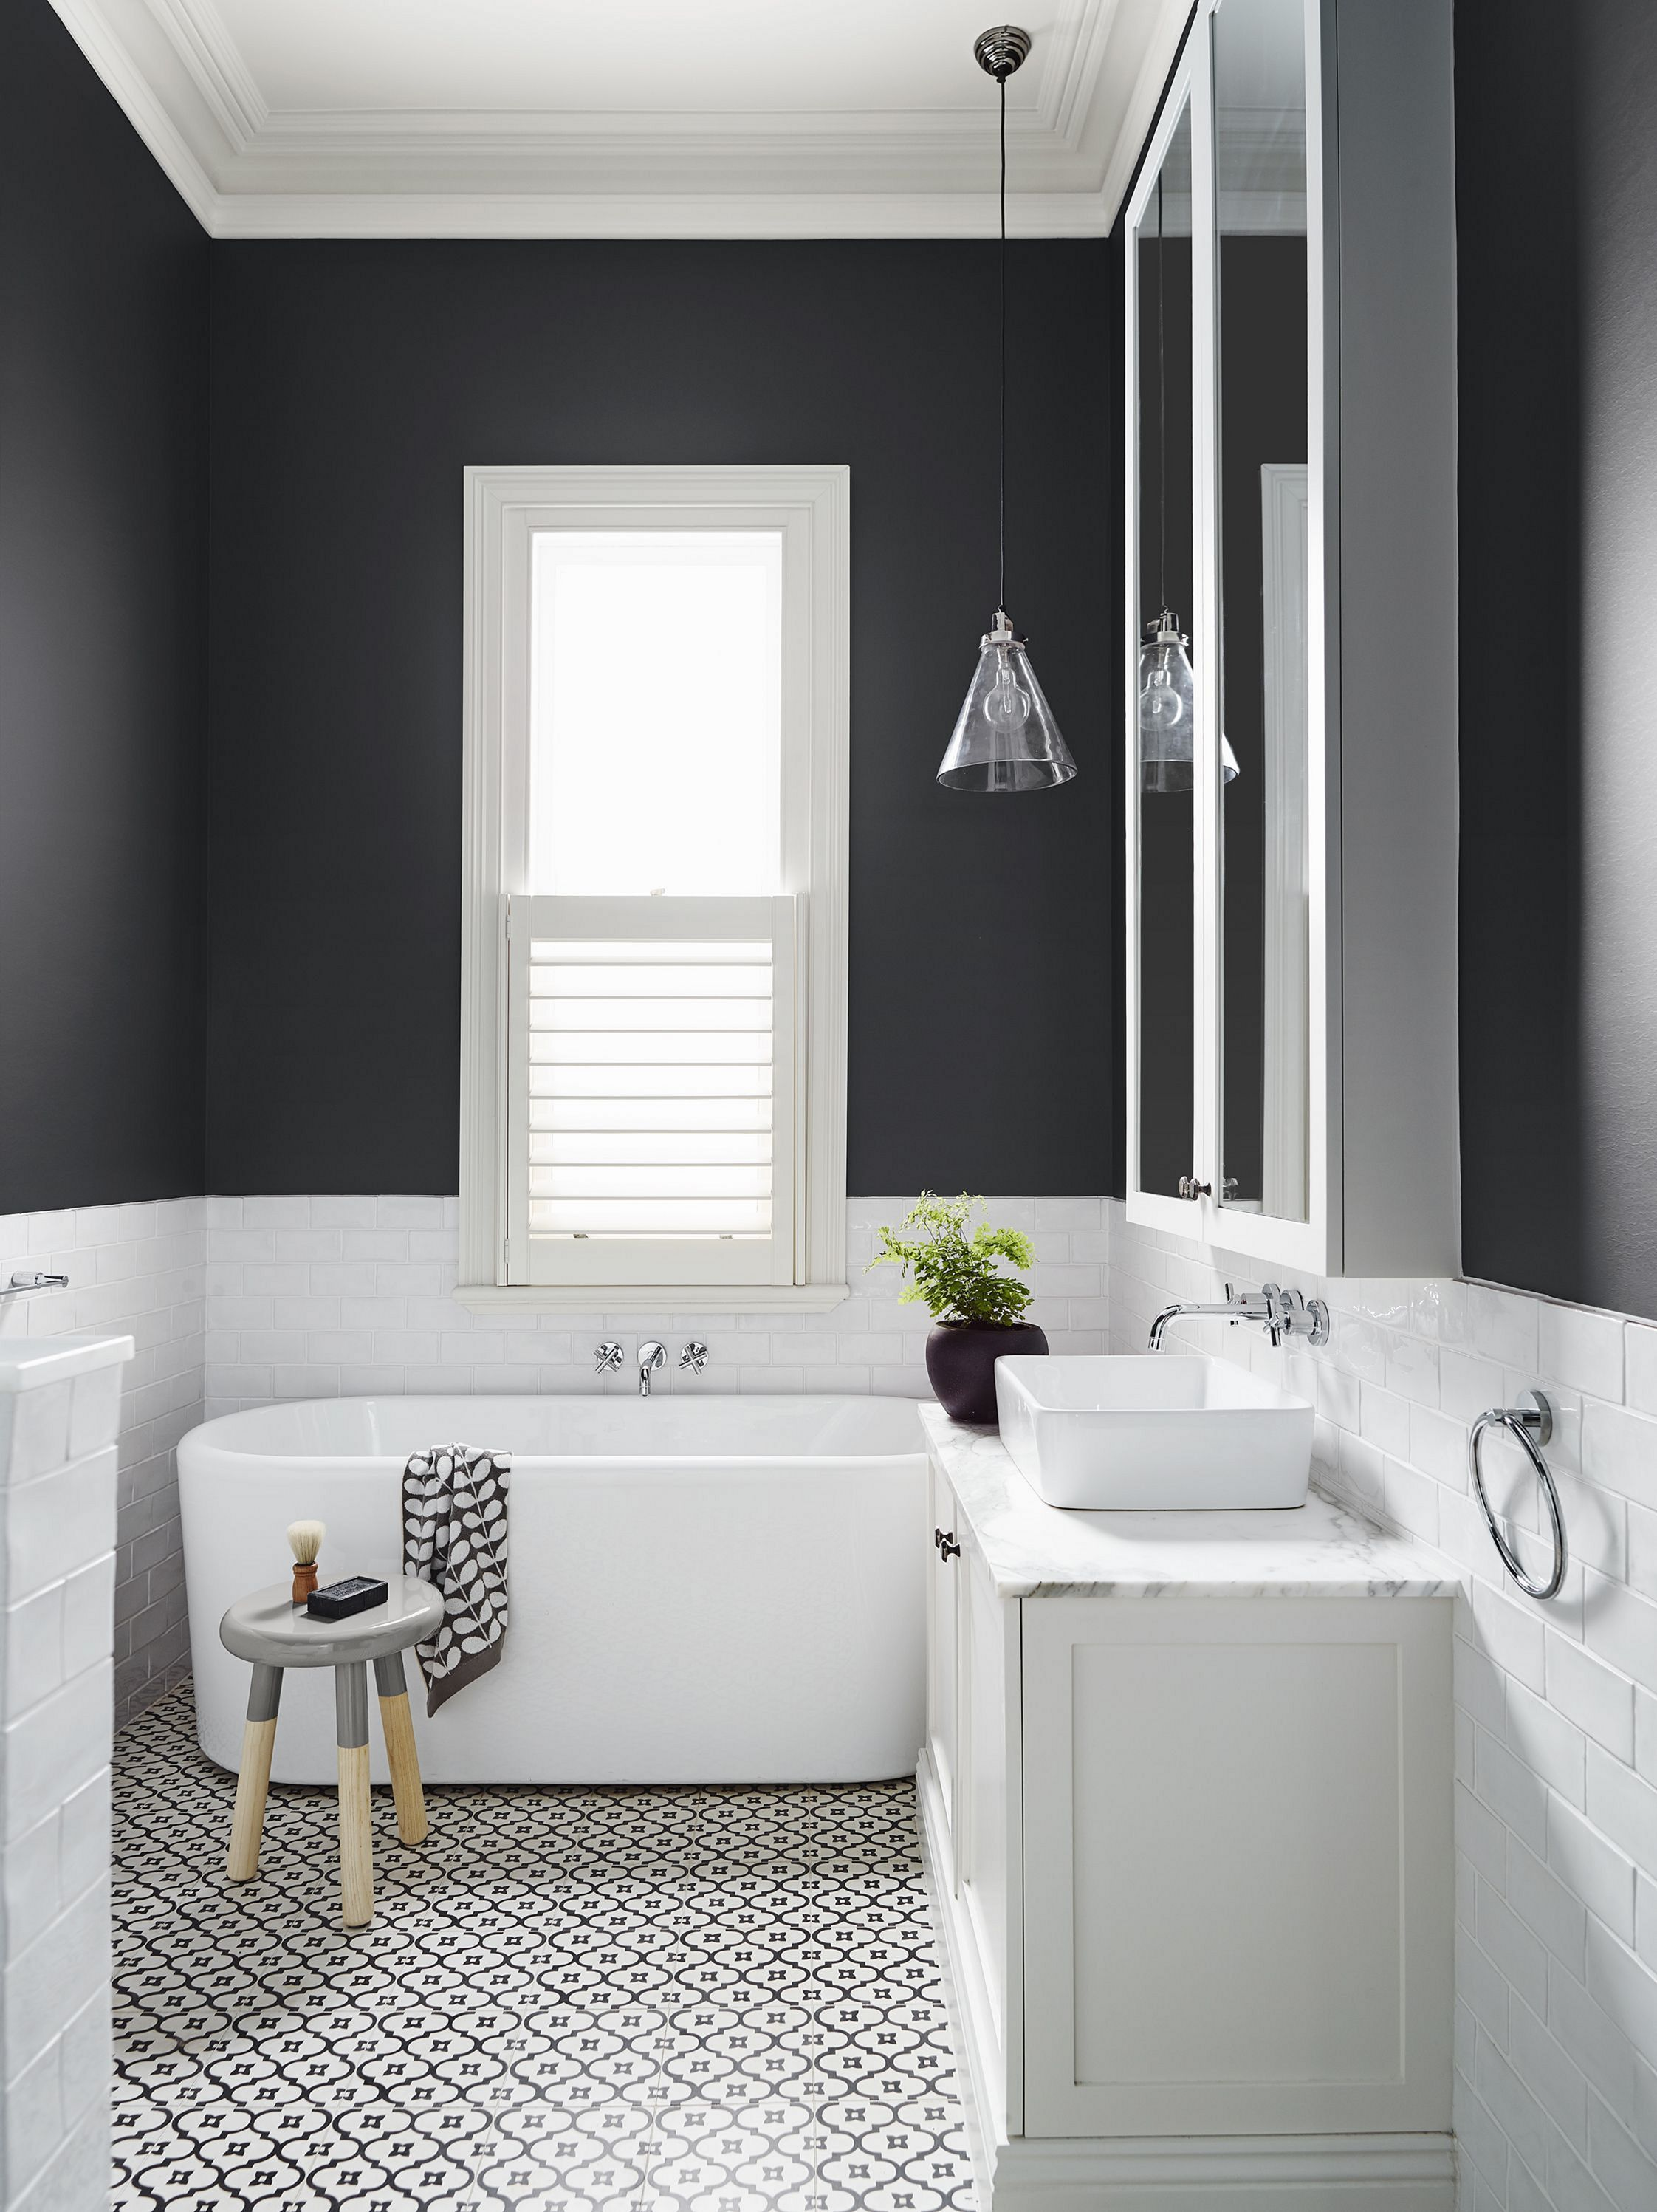 Pin On Bathroom Design Ideas For Small Spaces